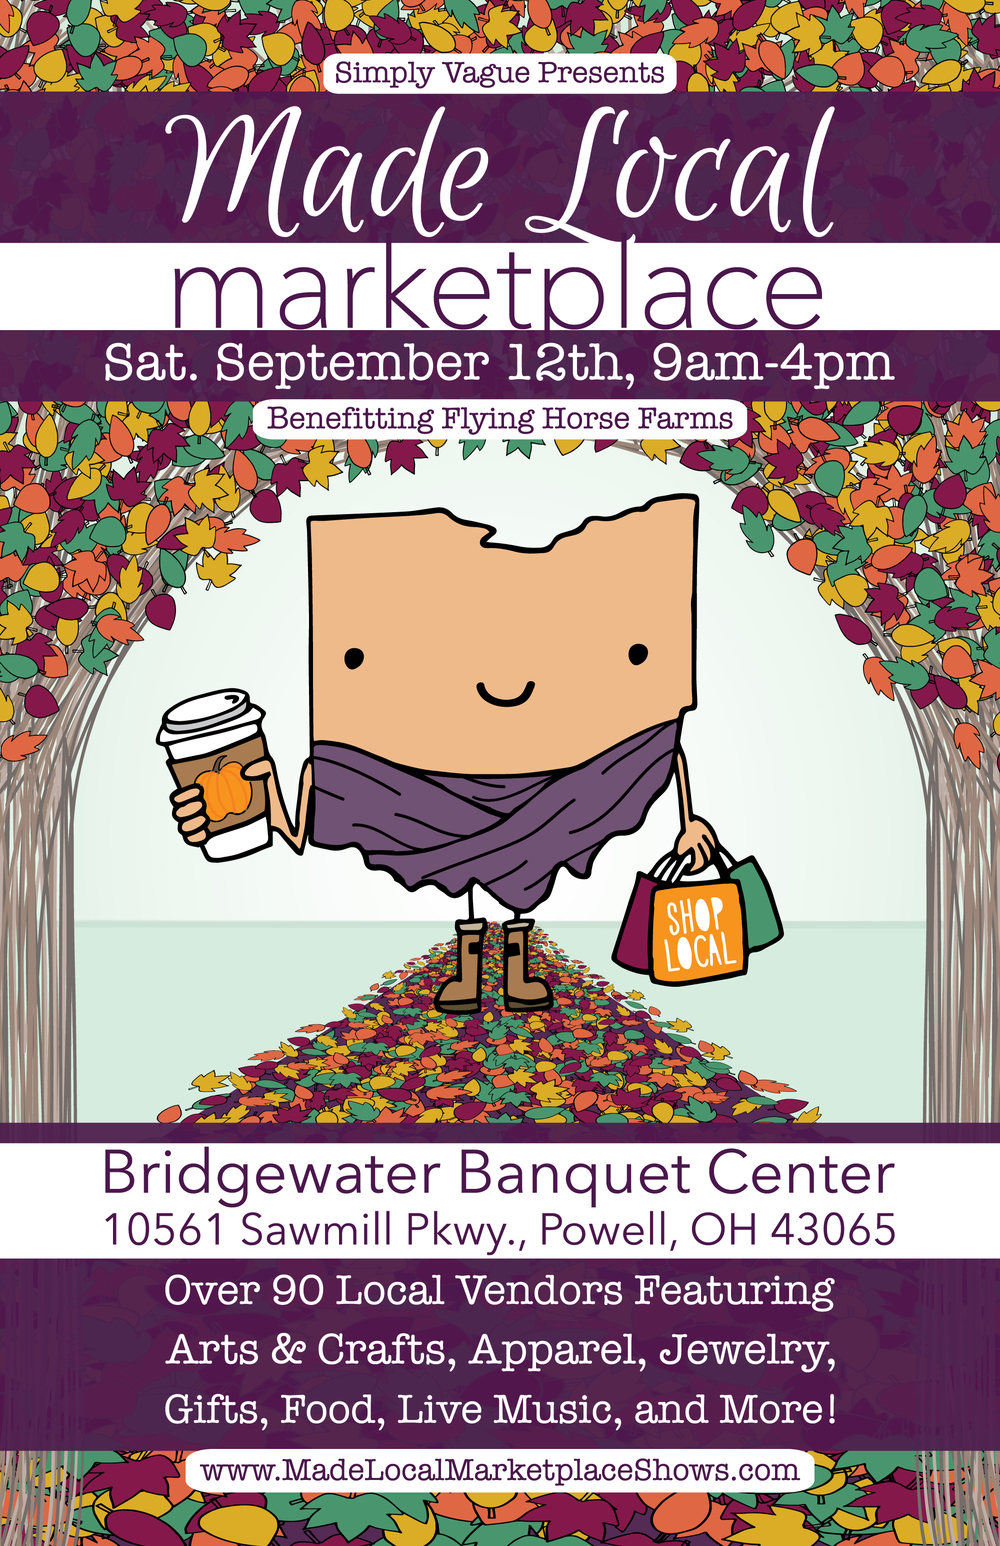 Poster Design for the Made Local Marketplace Fall Show 2015